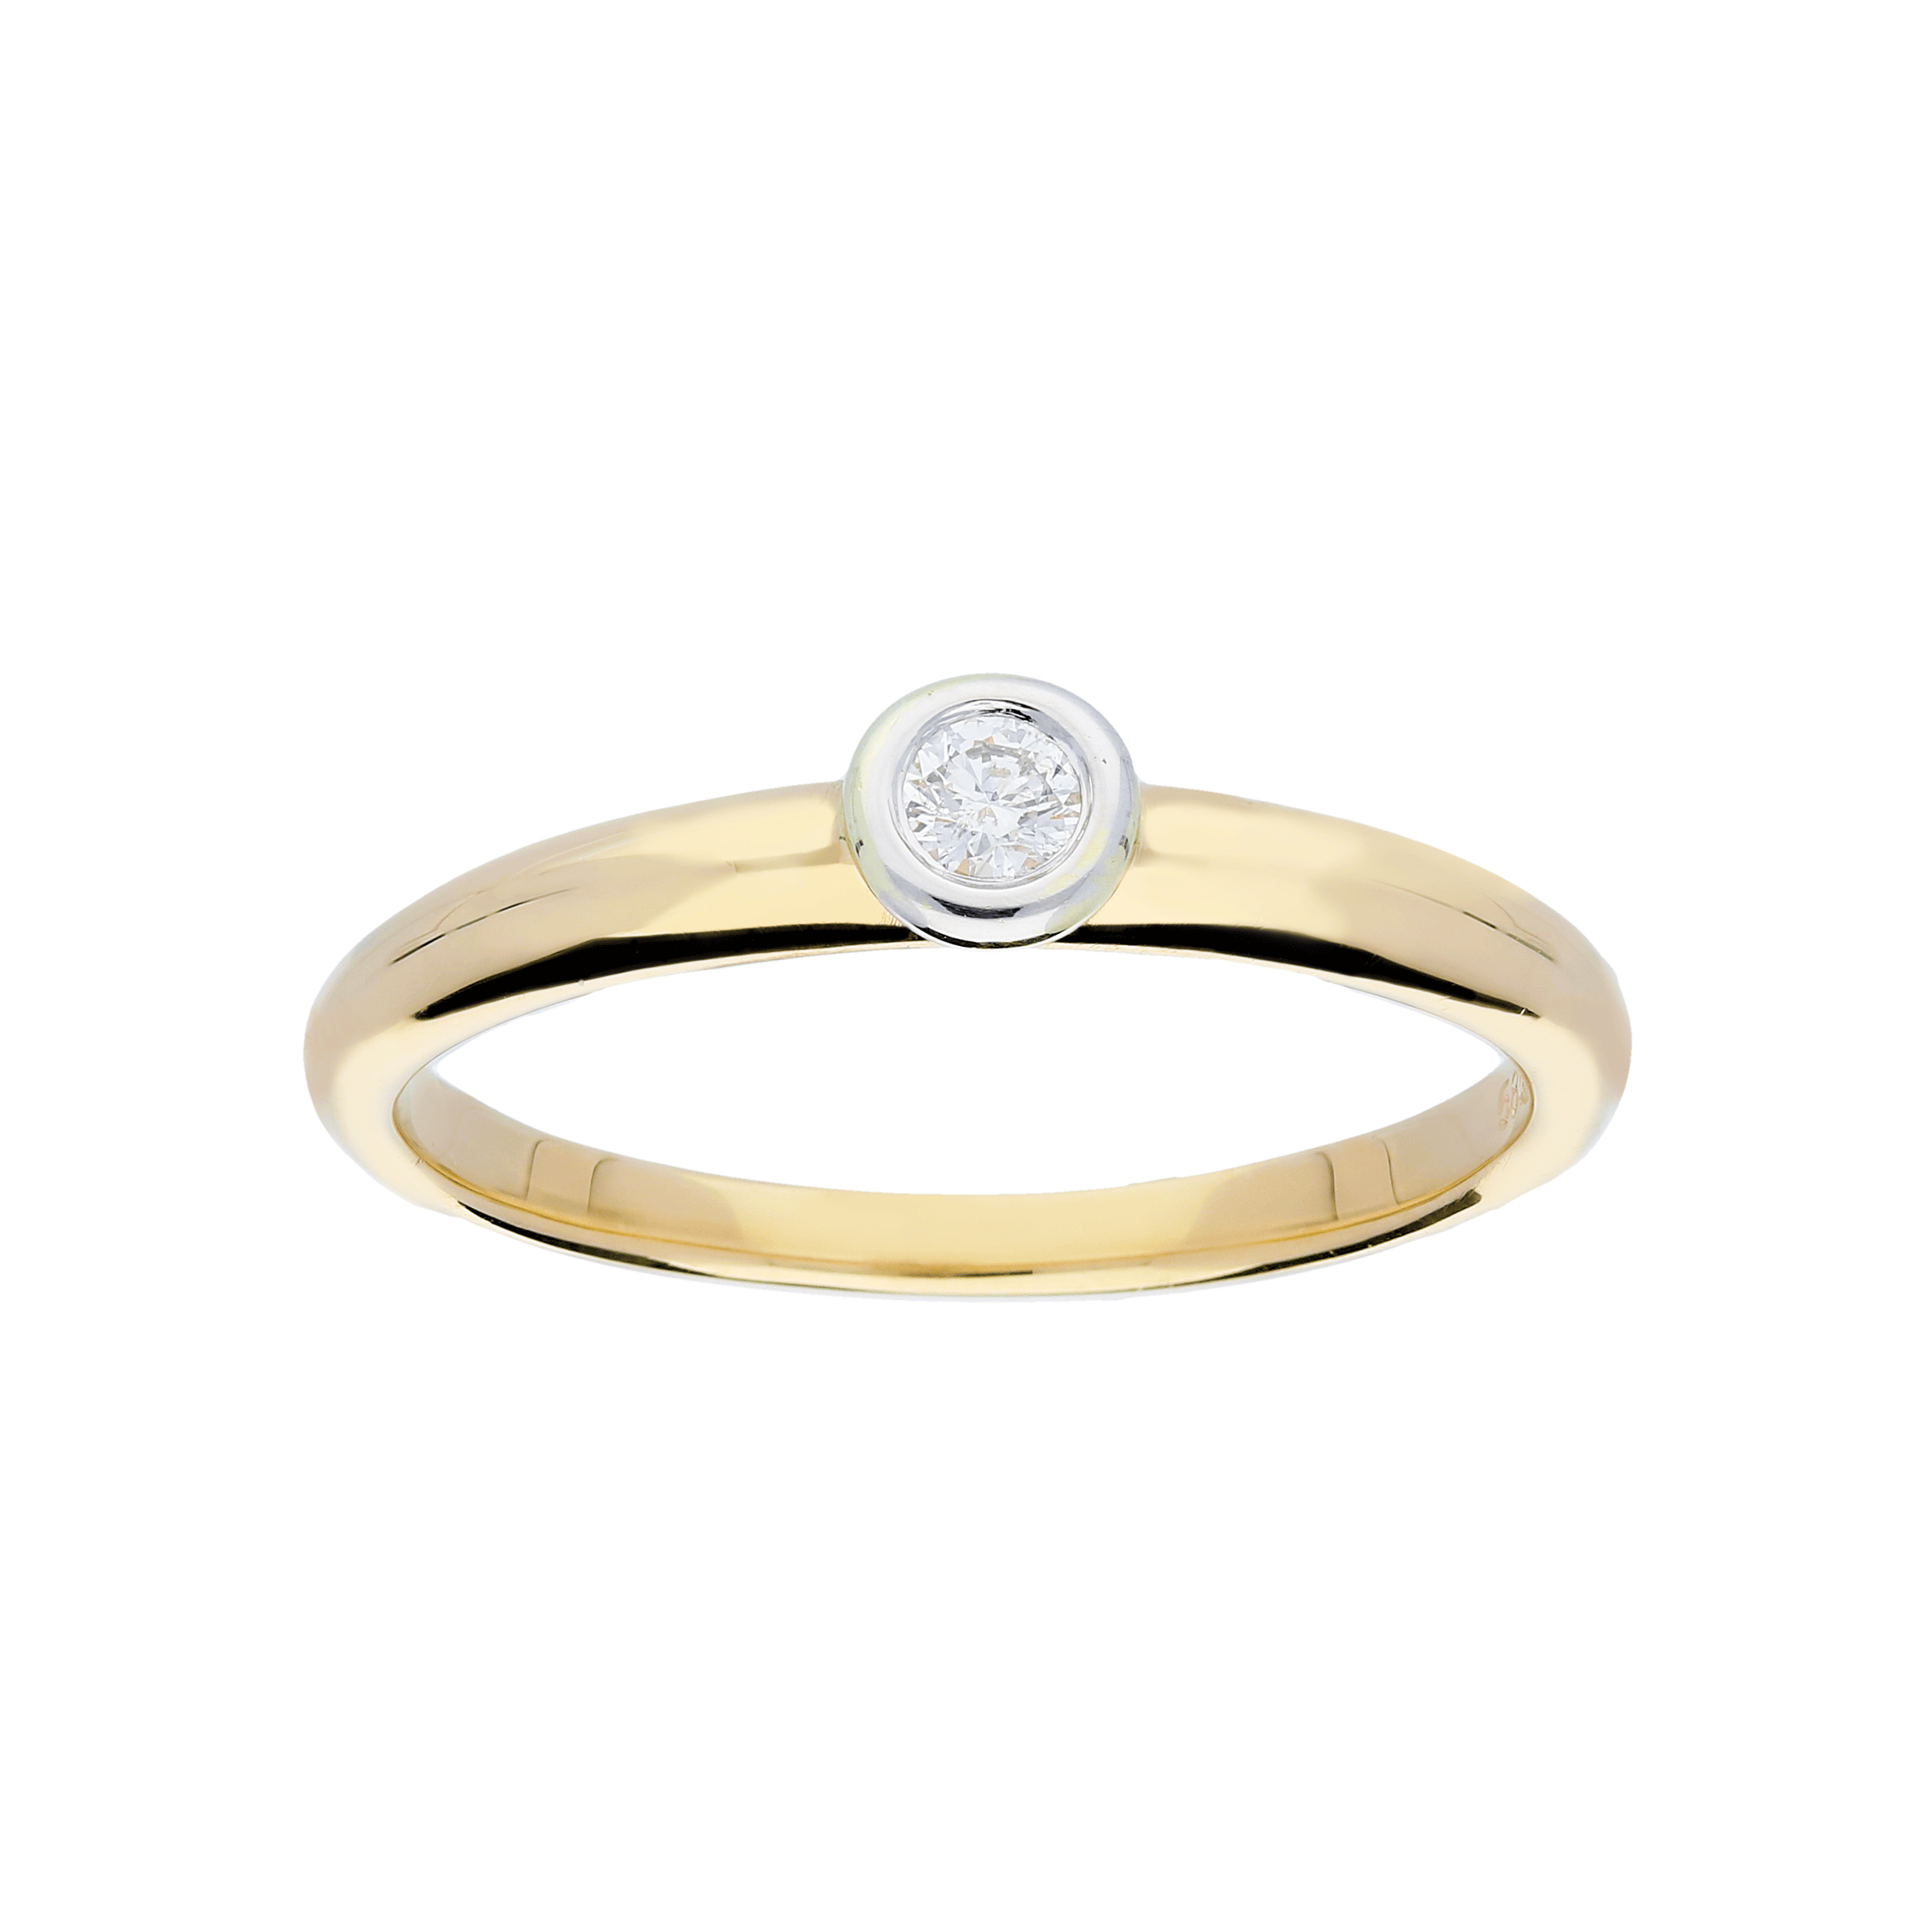 Glow Gouden Ring Bicolor Mat Glanzend Diamant 1 0.07ct G si 214.5209.52